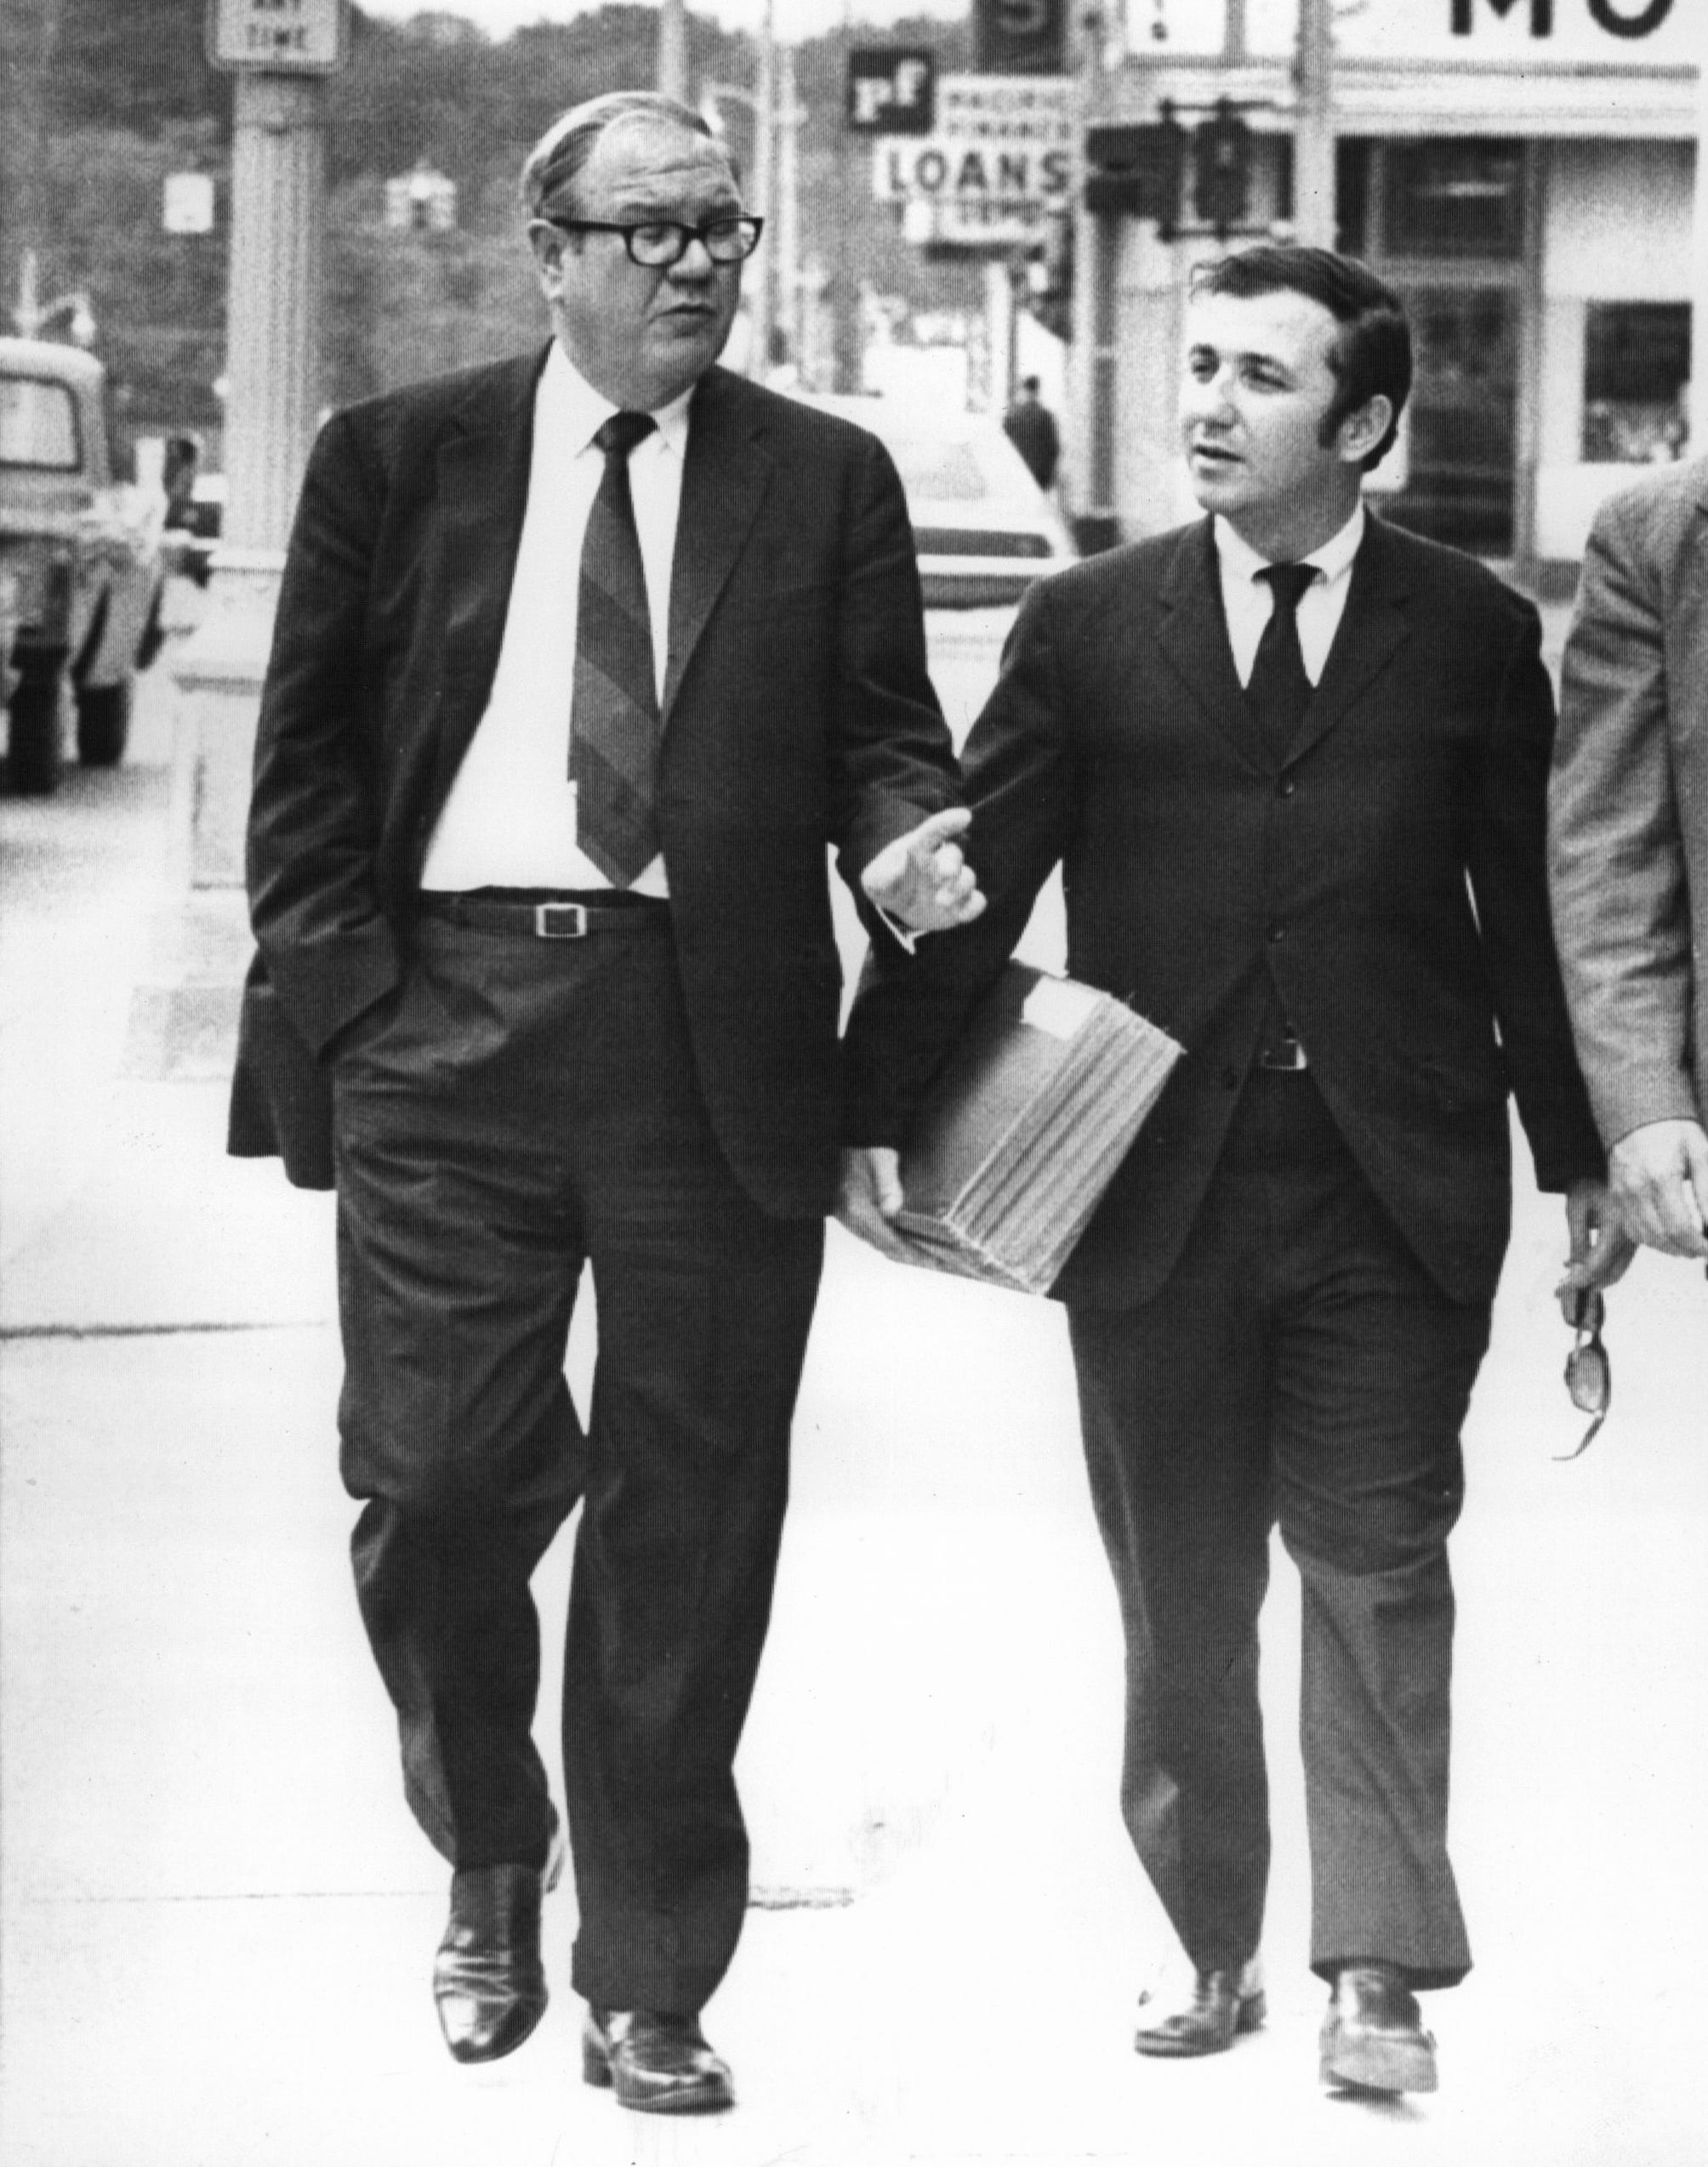 Joseph W. Louisell, left, chief defense attorney and his assistant Neil H. Fink leave court June 2, 1970 at the end of the first day in the murder trial of John Norman Collins, 22, in Ann Arbor, Mich.